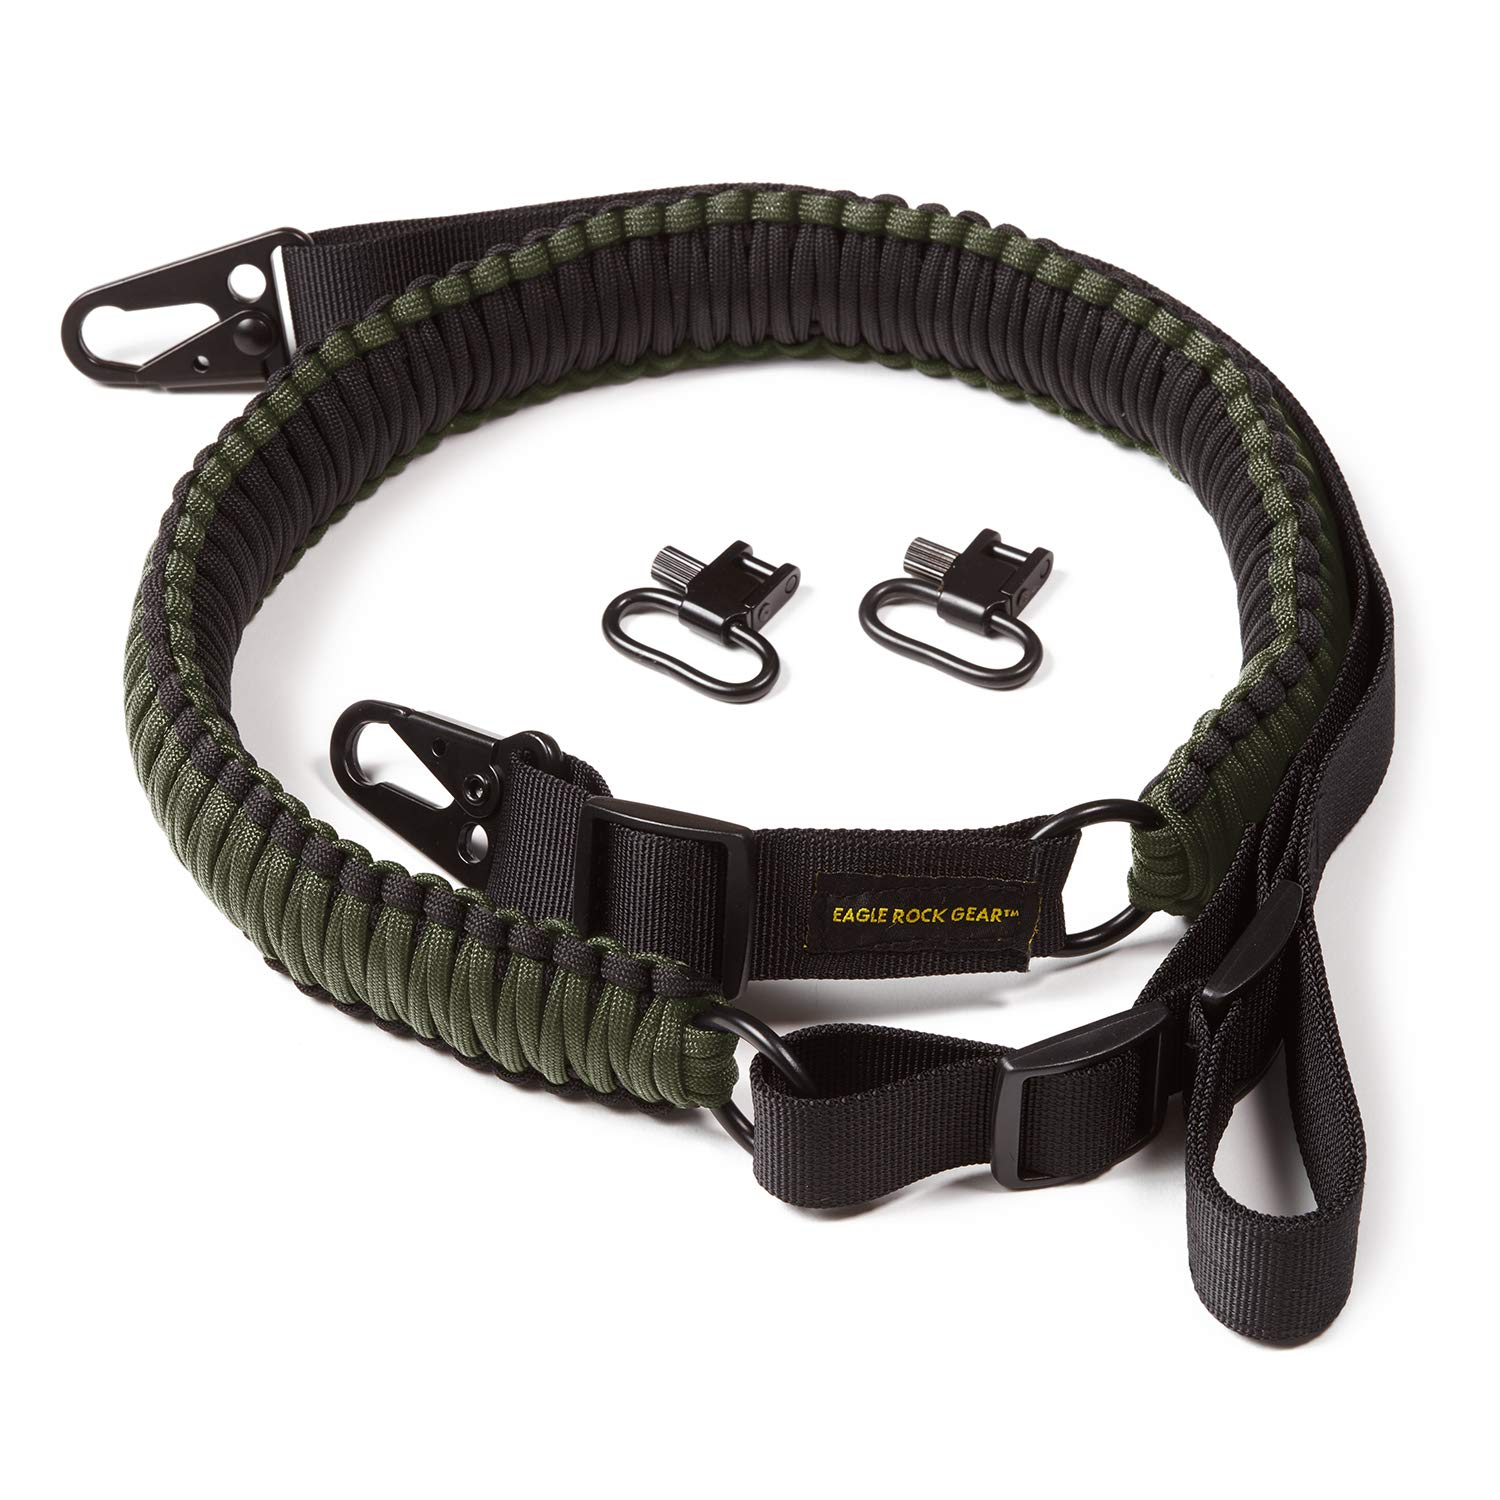 Eagle Rock Gear 550 Paracord 2 Point Gun Sling for Rifles, Shotguns, Crossbows, Airsoft - with Easy Adjustable Strap, HK Clips, Swivels - US Patent Pending (Black and Army Green) by Eagle Rock Gear